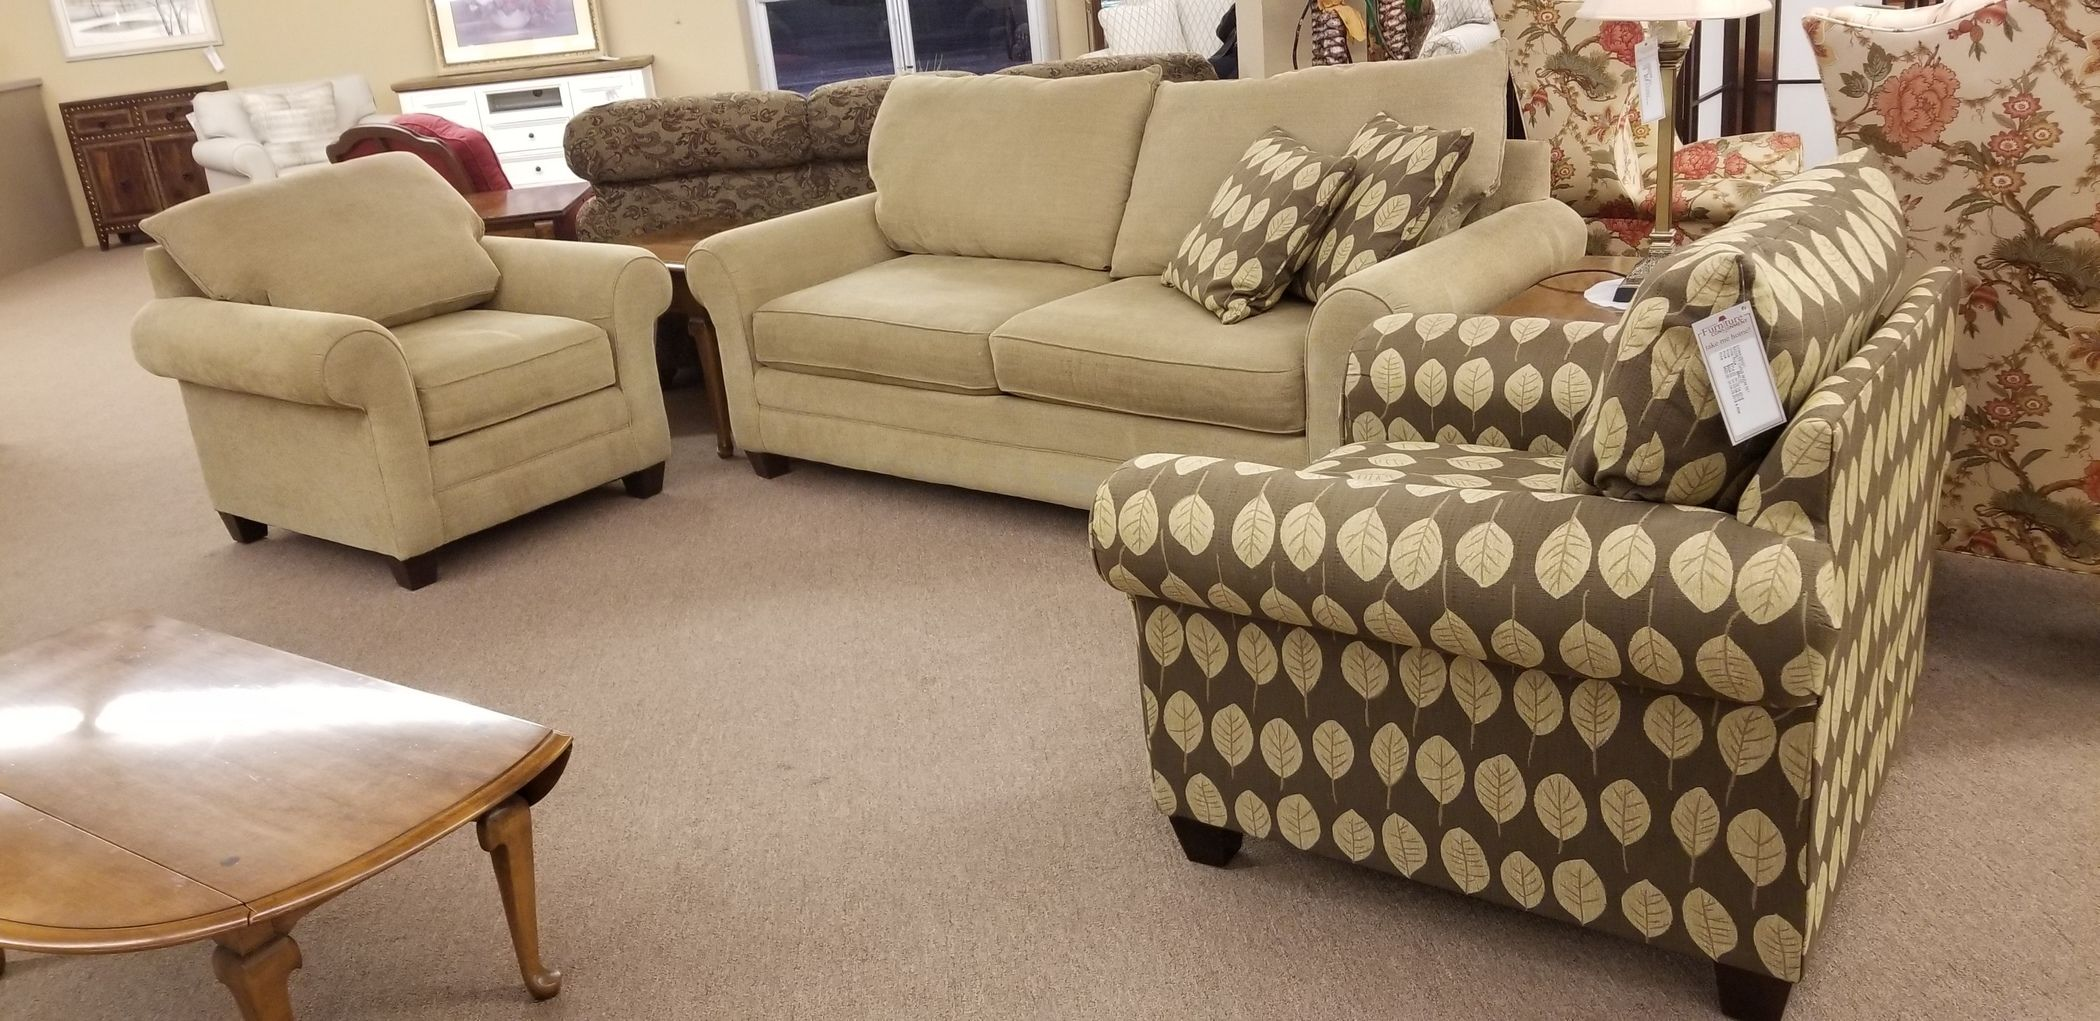 Bassett Living Room Set Delmarva Furniture Consignment